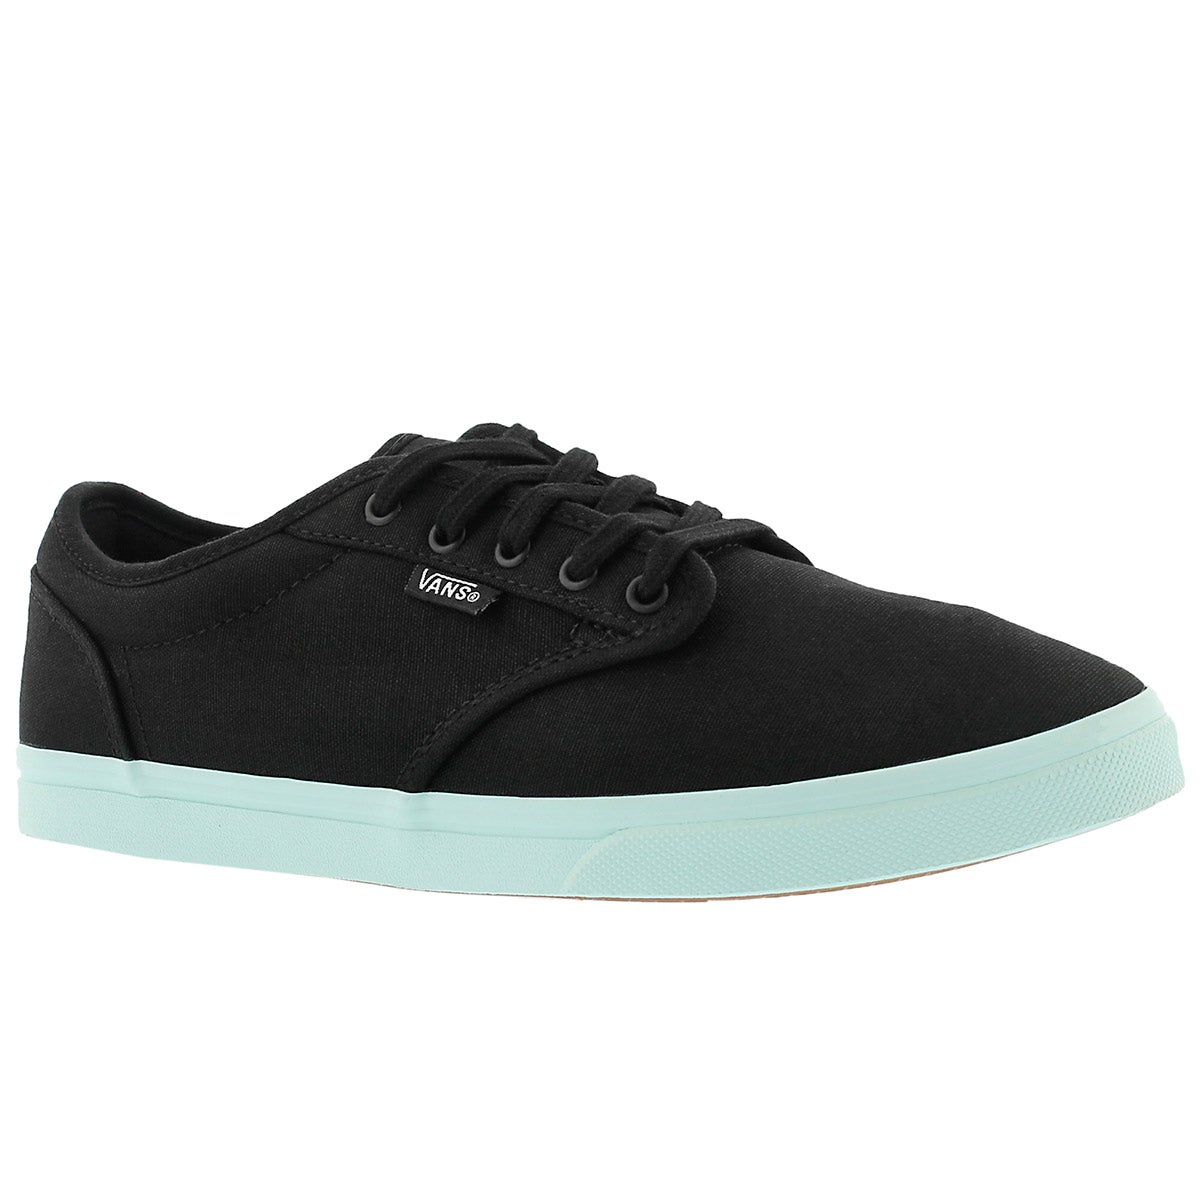 Lds Atwood Low blk/sea lace up sneaker